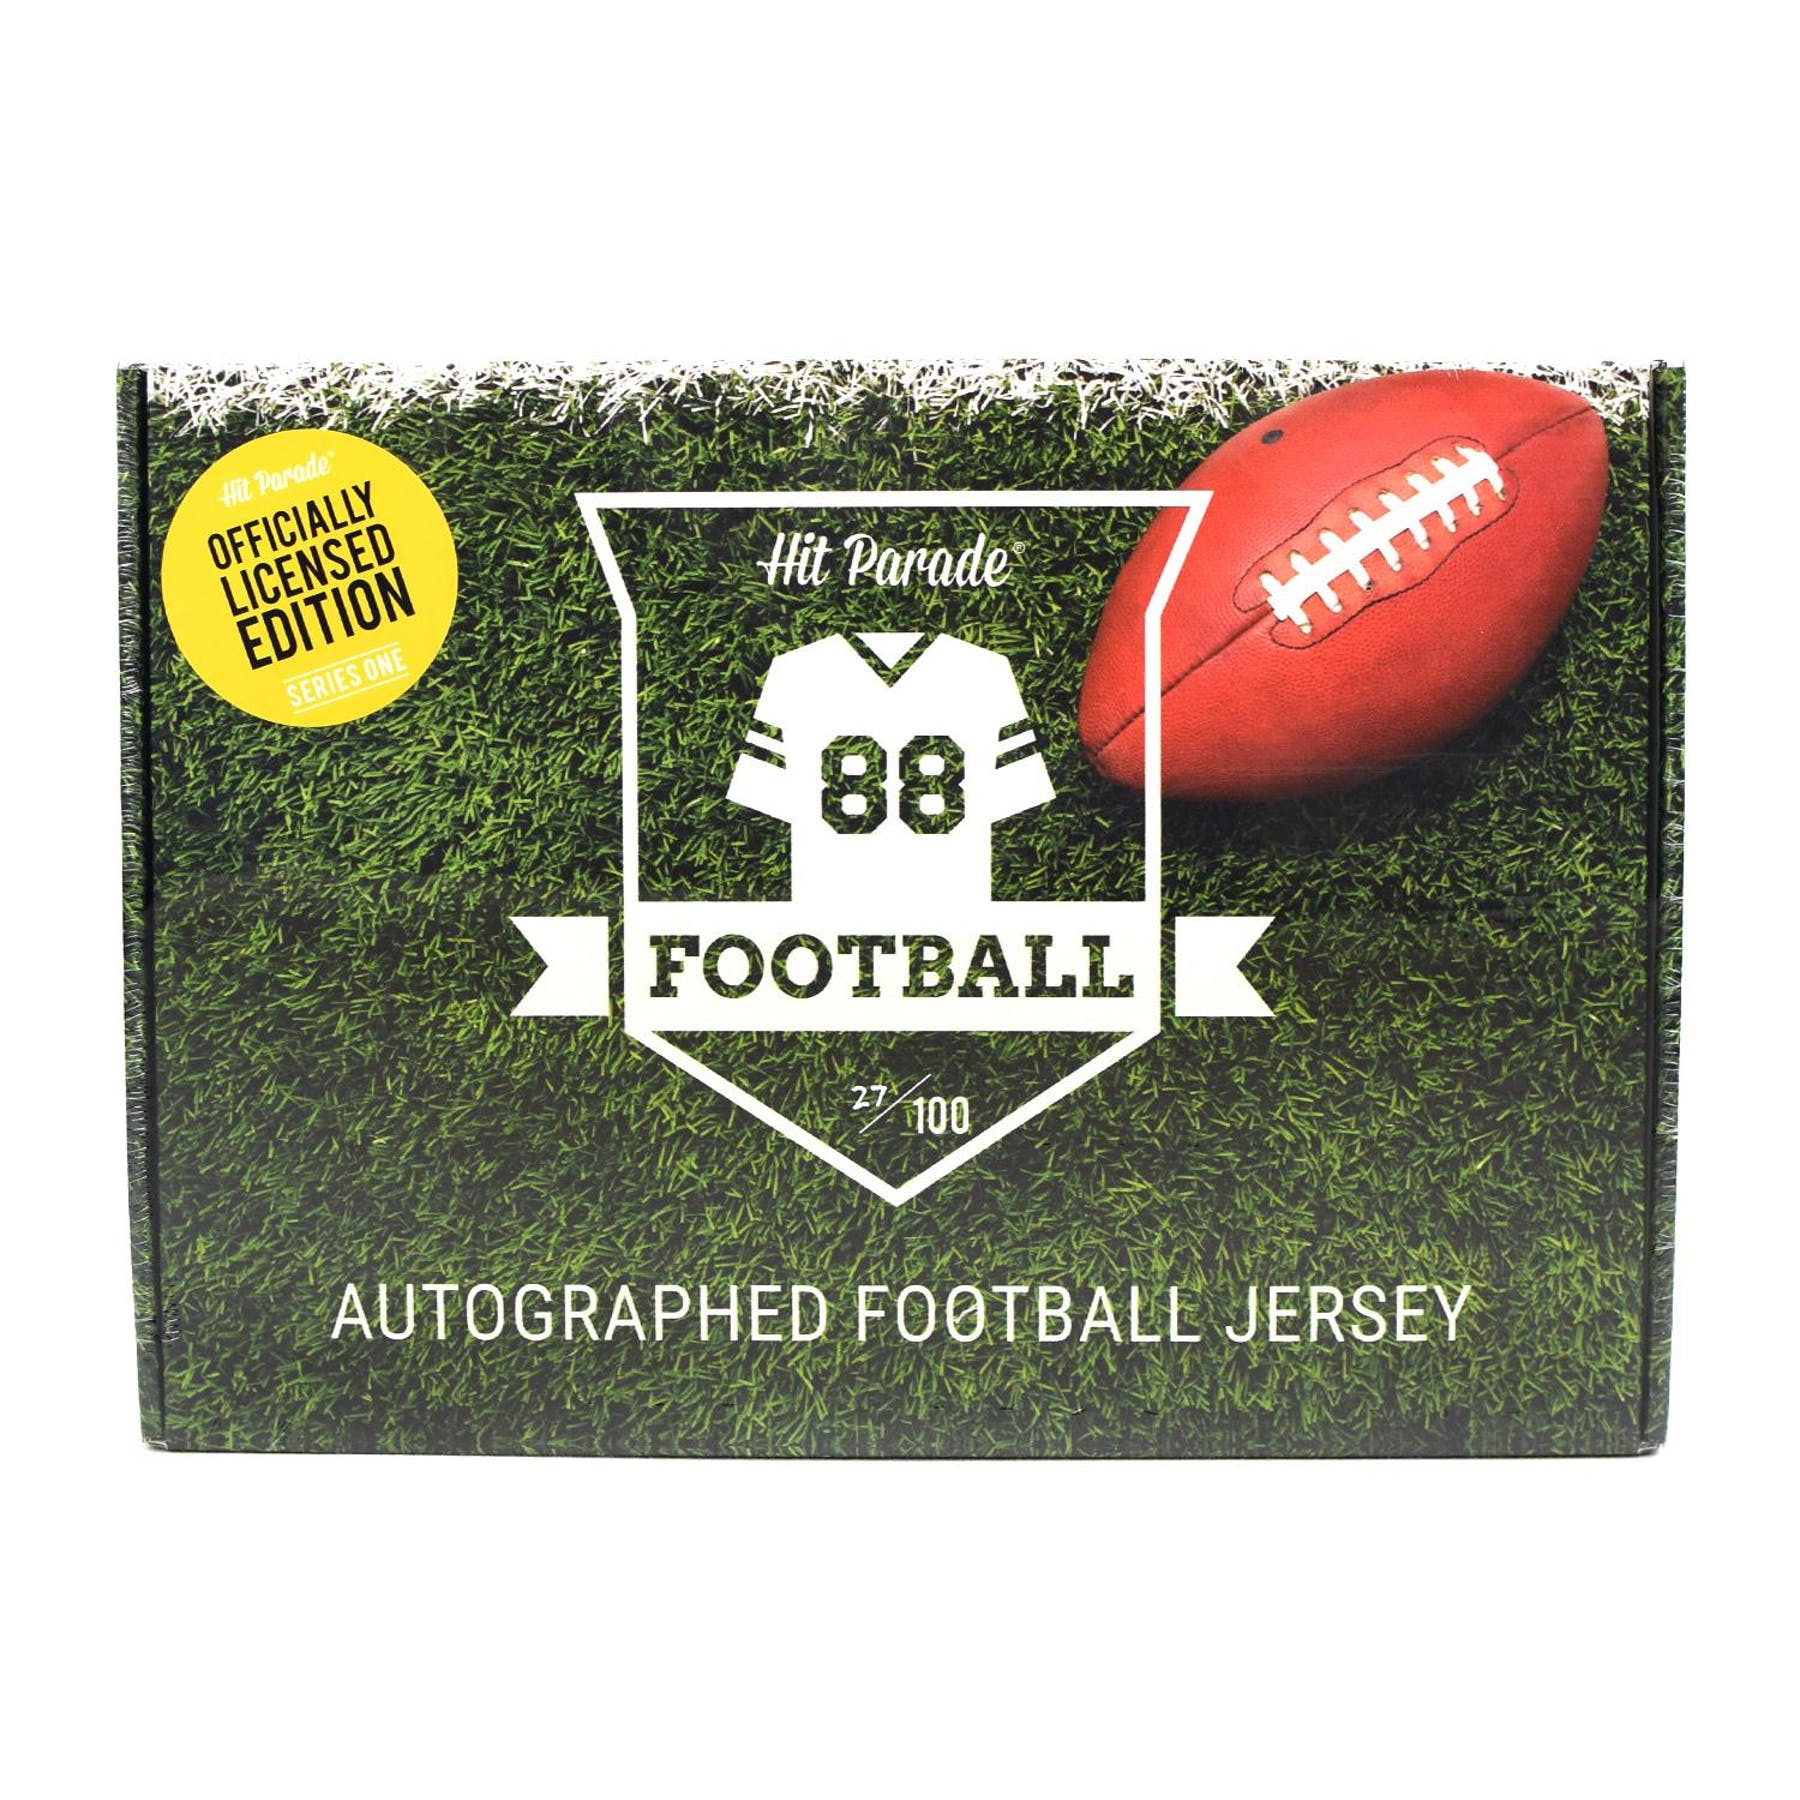 2018 Hit Parade Autographed OFFICIALLY LICENSED Football Jersey Hobby Box -  Series 1 - TOM BRADY!!!  76e54feaf